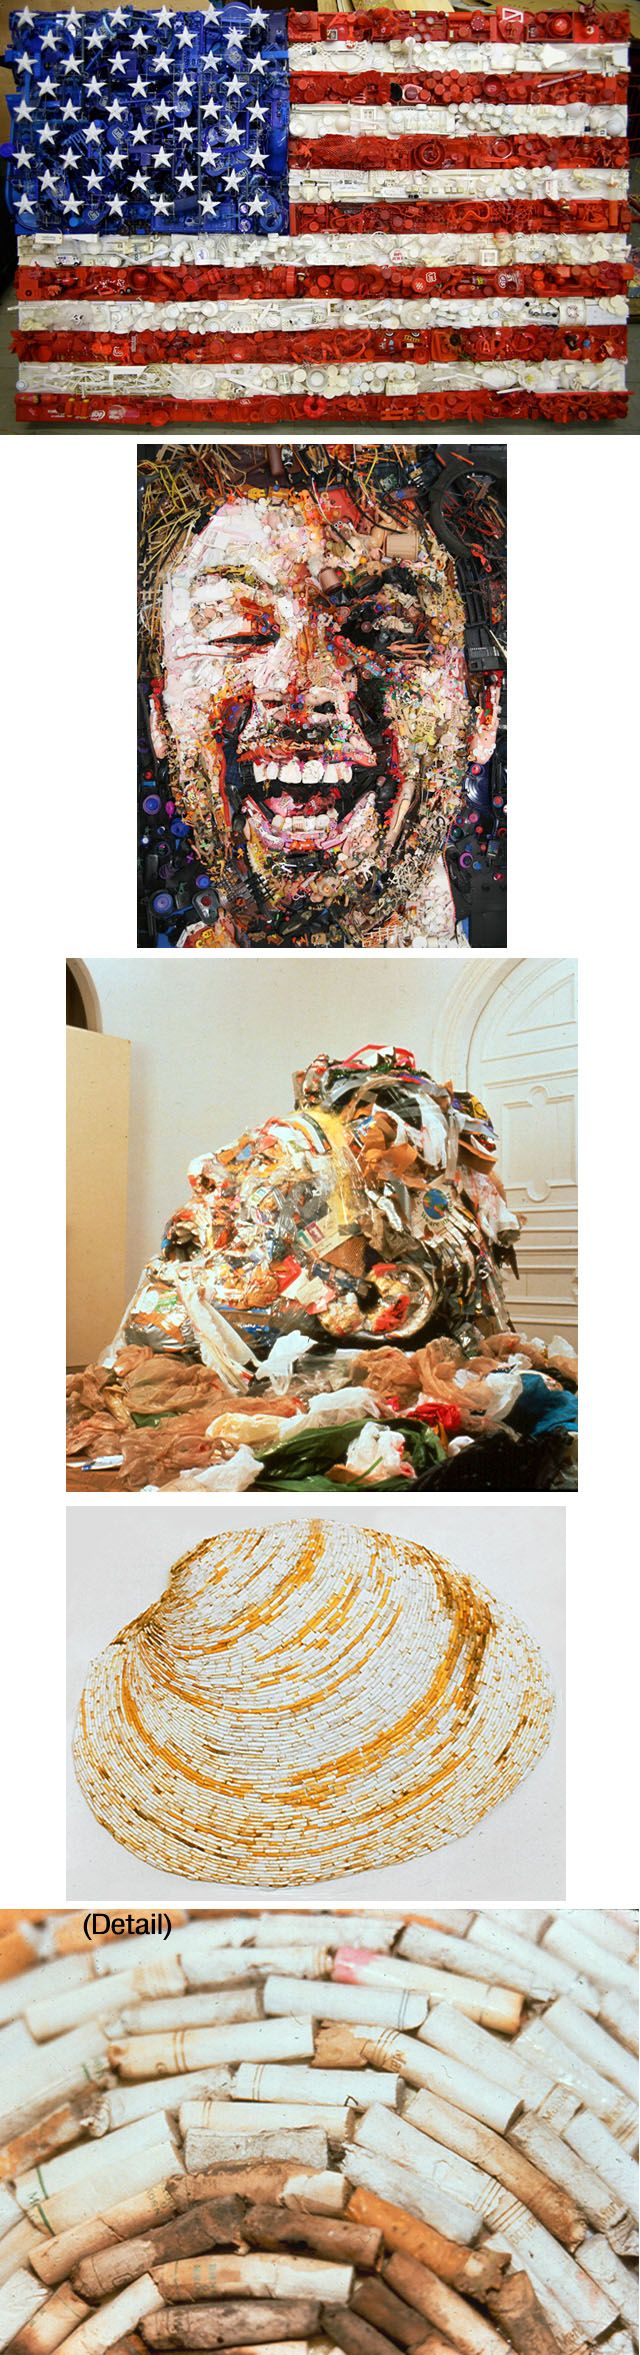 Best Trash Castle Images On Pinterest Castle Arches And - Theres an entire museum dedicated to rubbish art and its a sight to behold